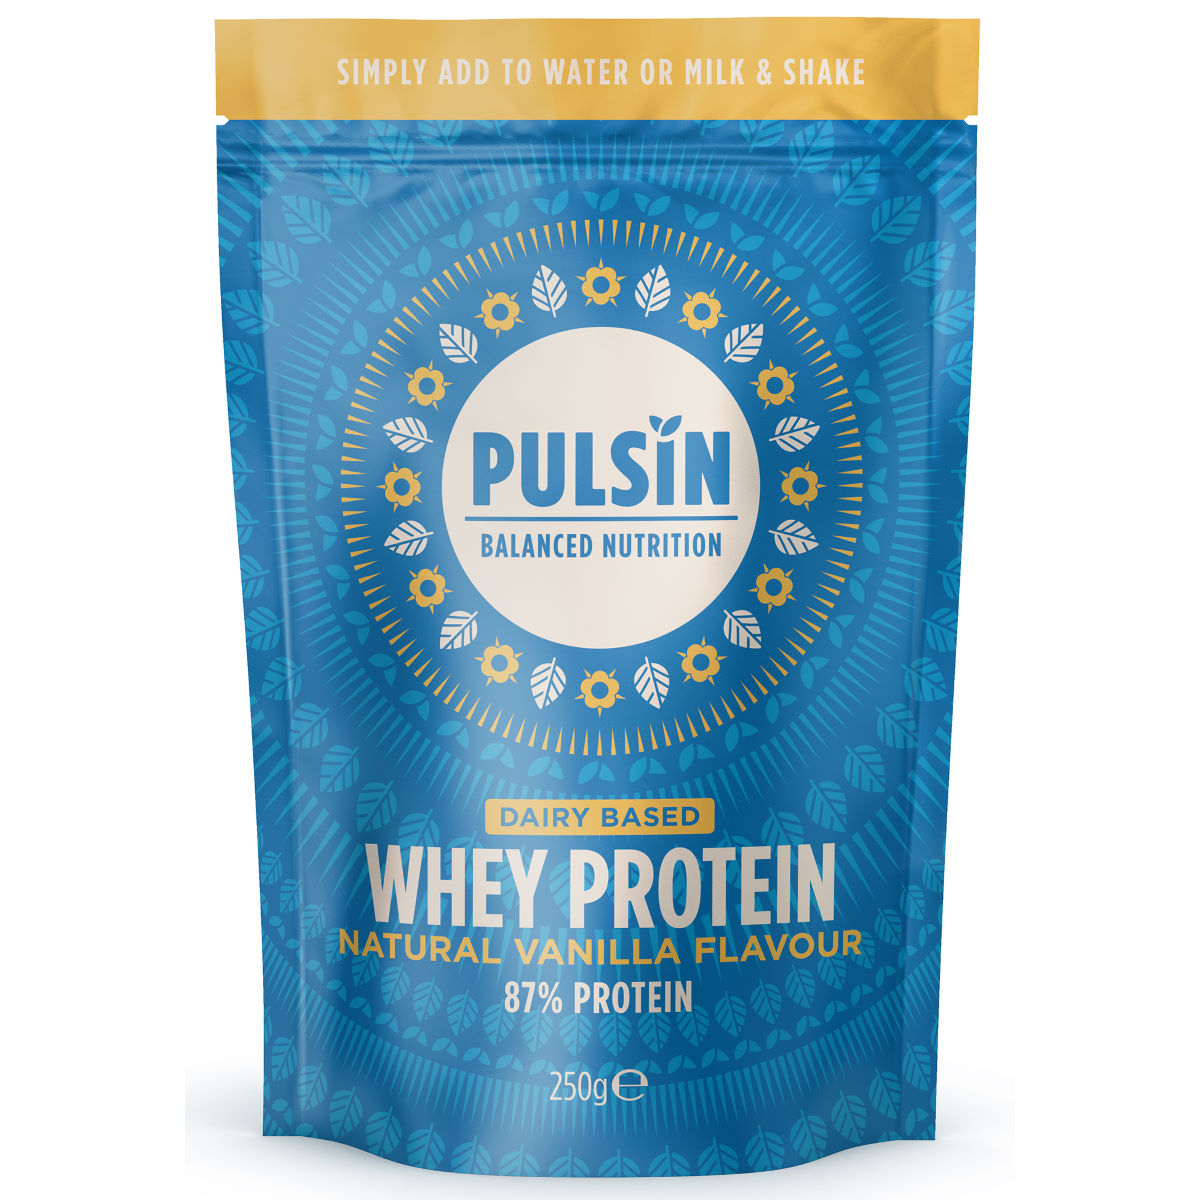 Pulsin Protein Powder (250g) - 250g Vanilla Whey  Powdered Drinks